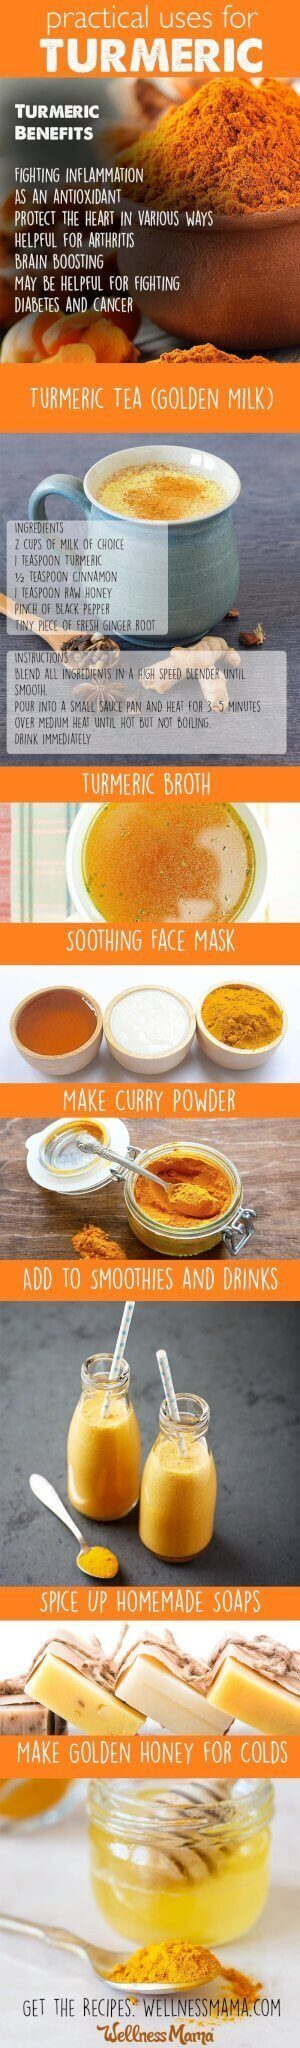 practical-uses-for-turmeric-from-wellness-mama